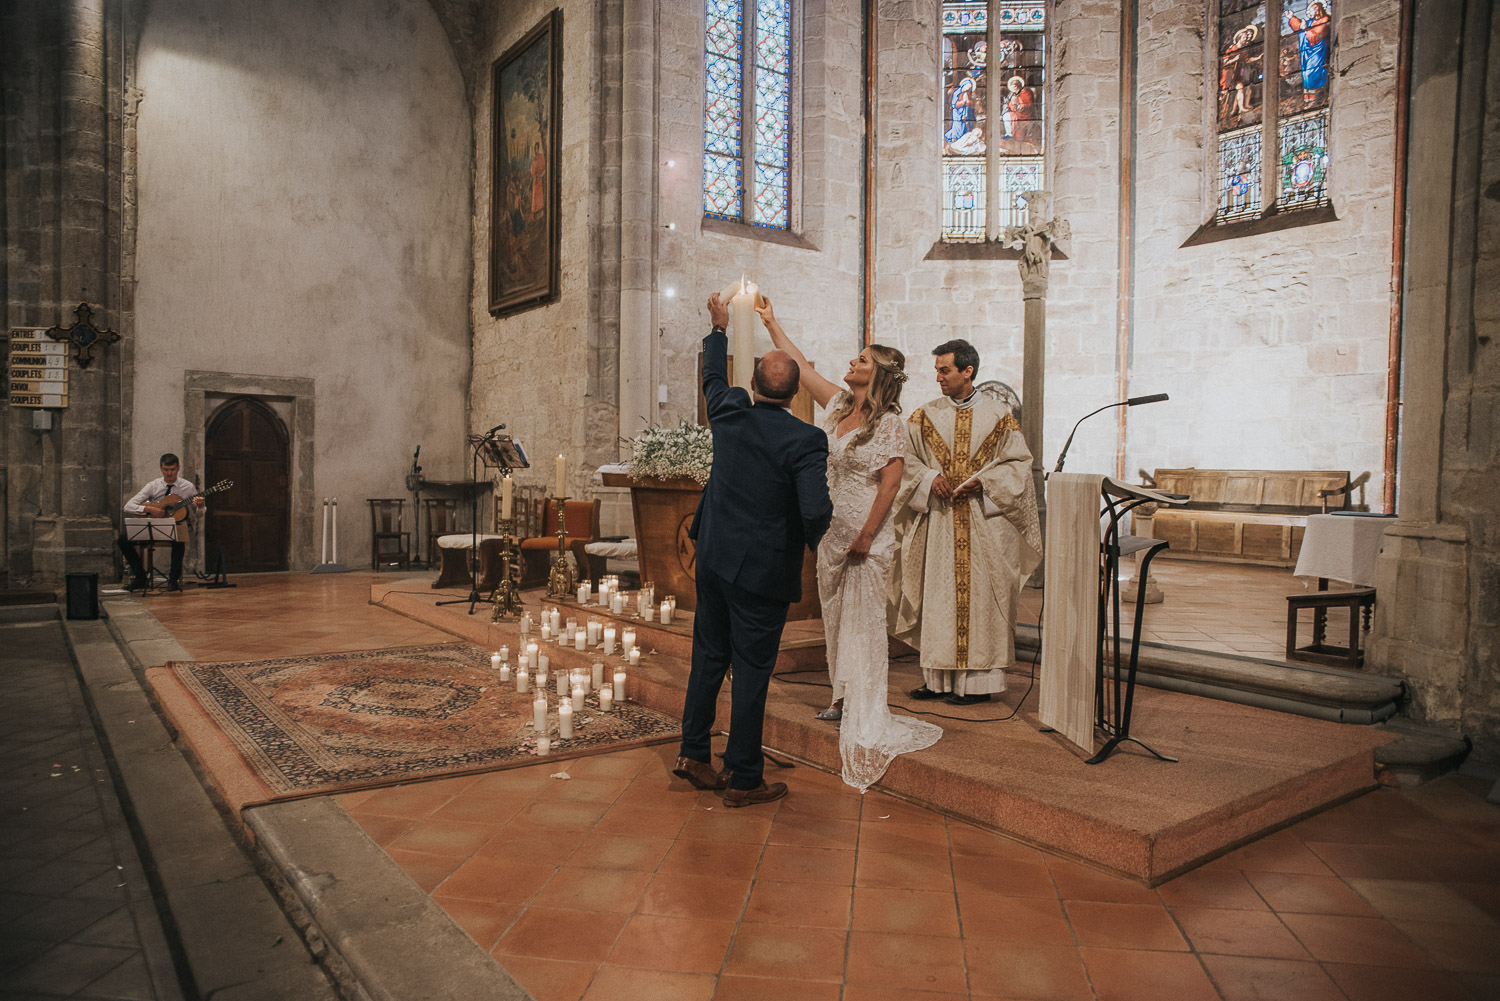 chateau_canet_carcassonne_wedding_katy_webb_photography_france_UK102